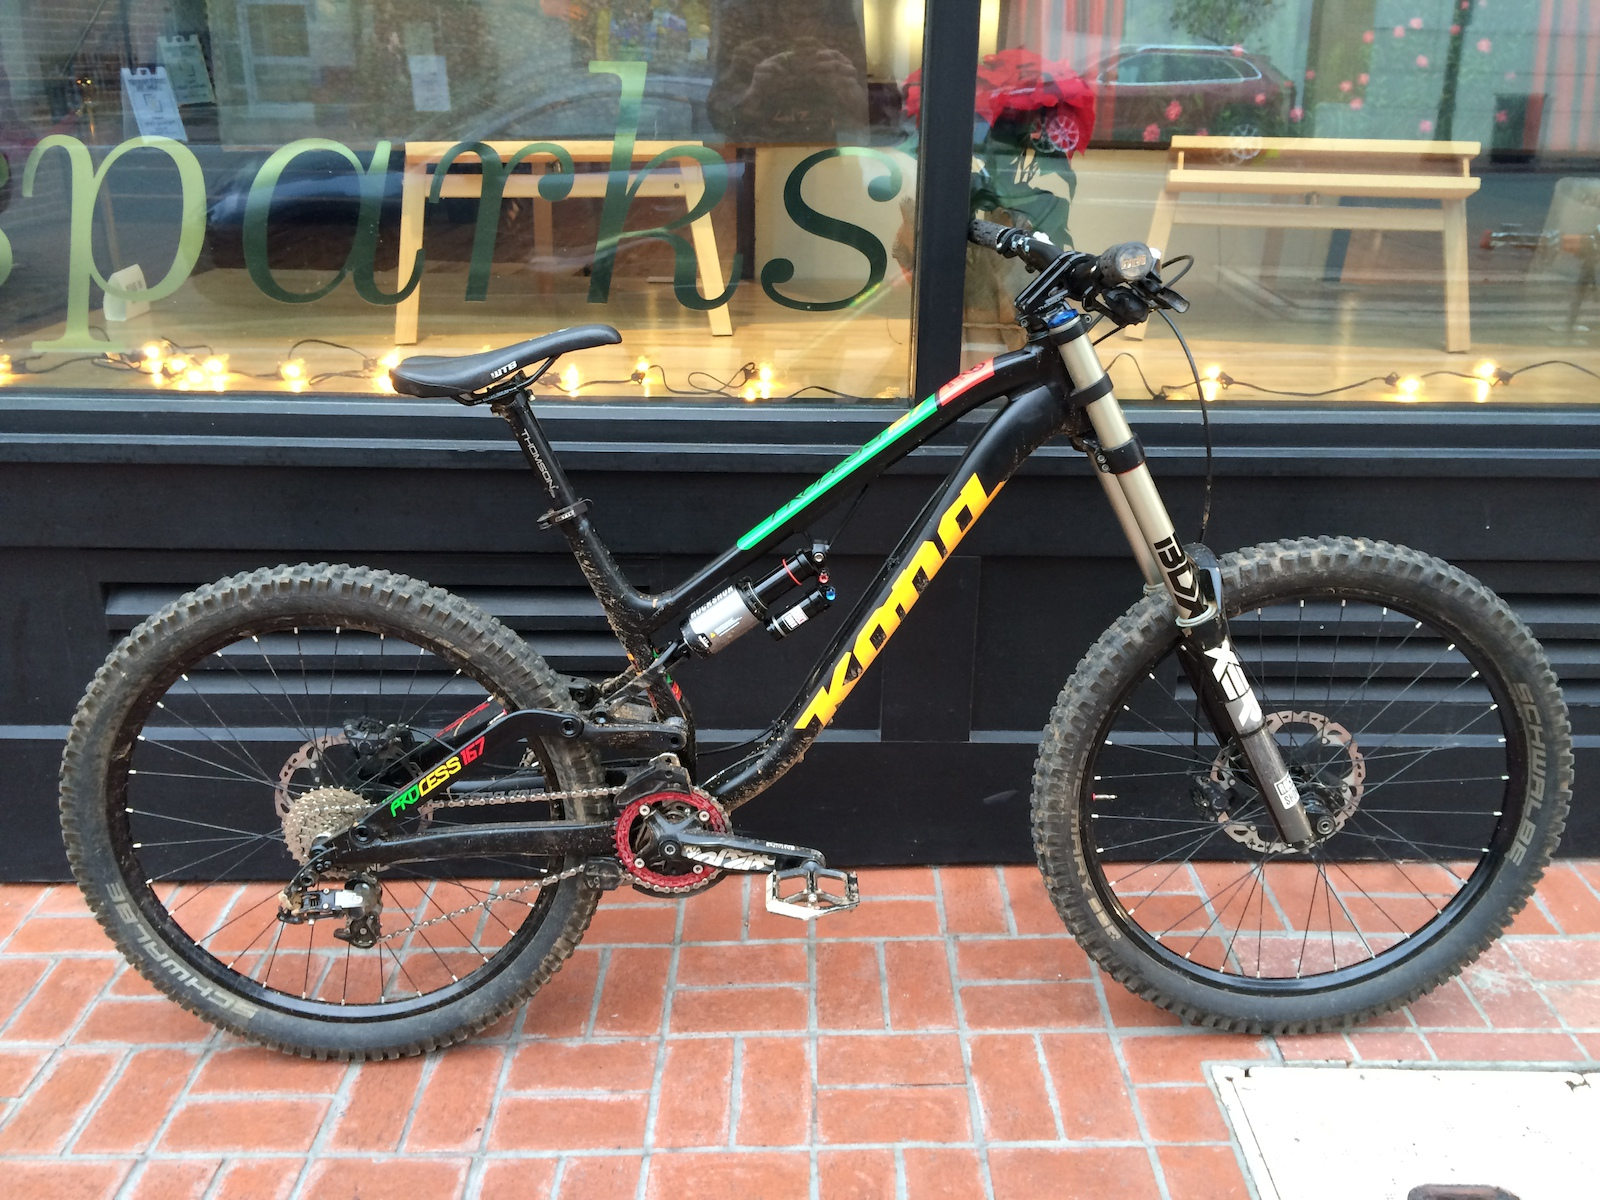 2016 Kona Process 167 in DH mode with Boxxer